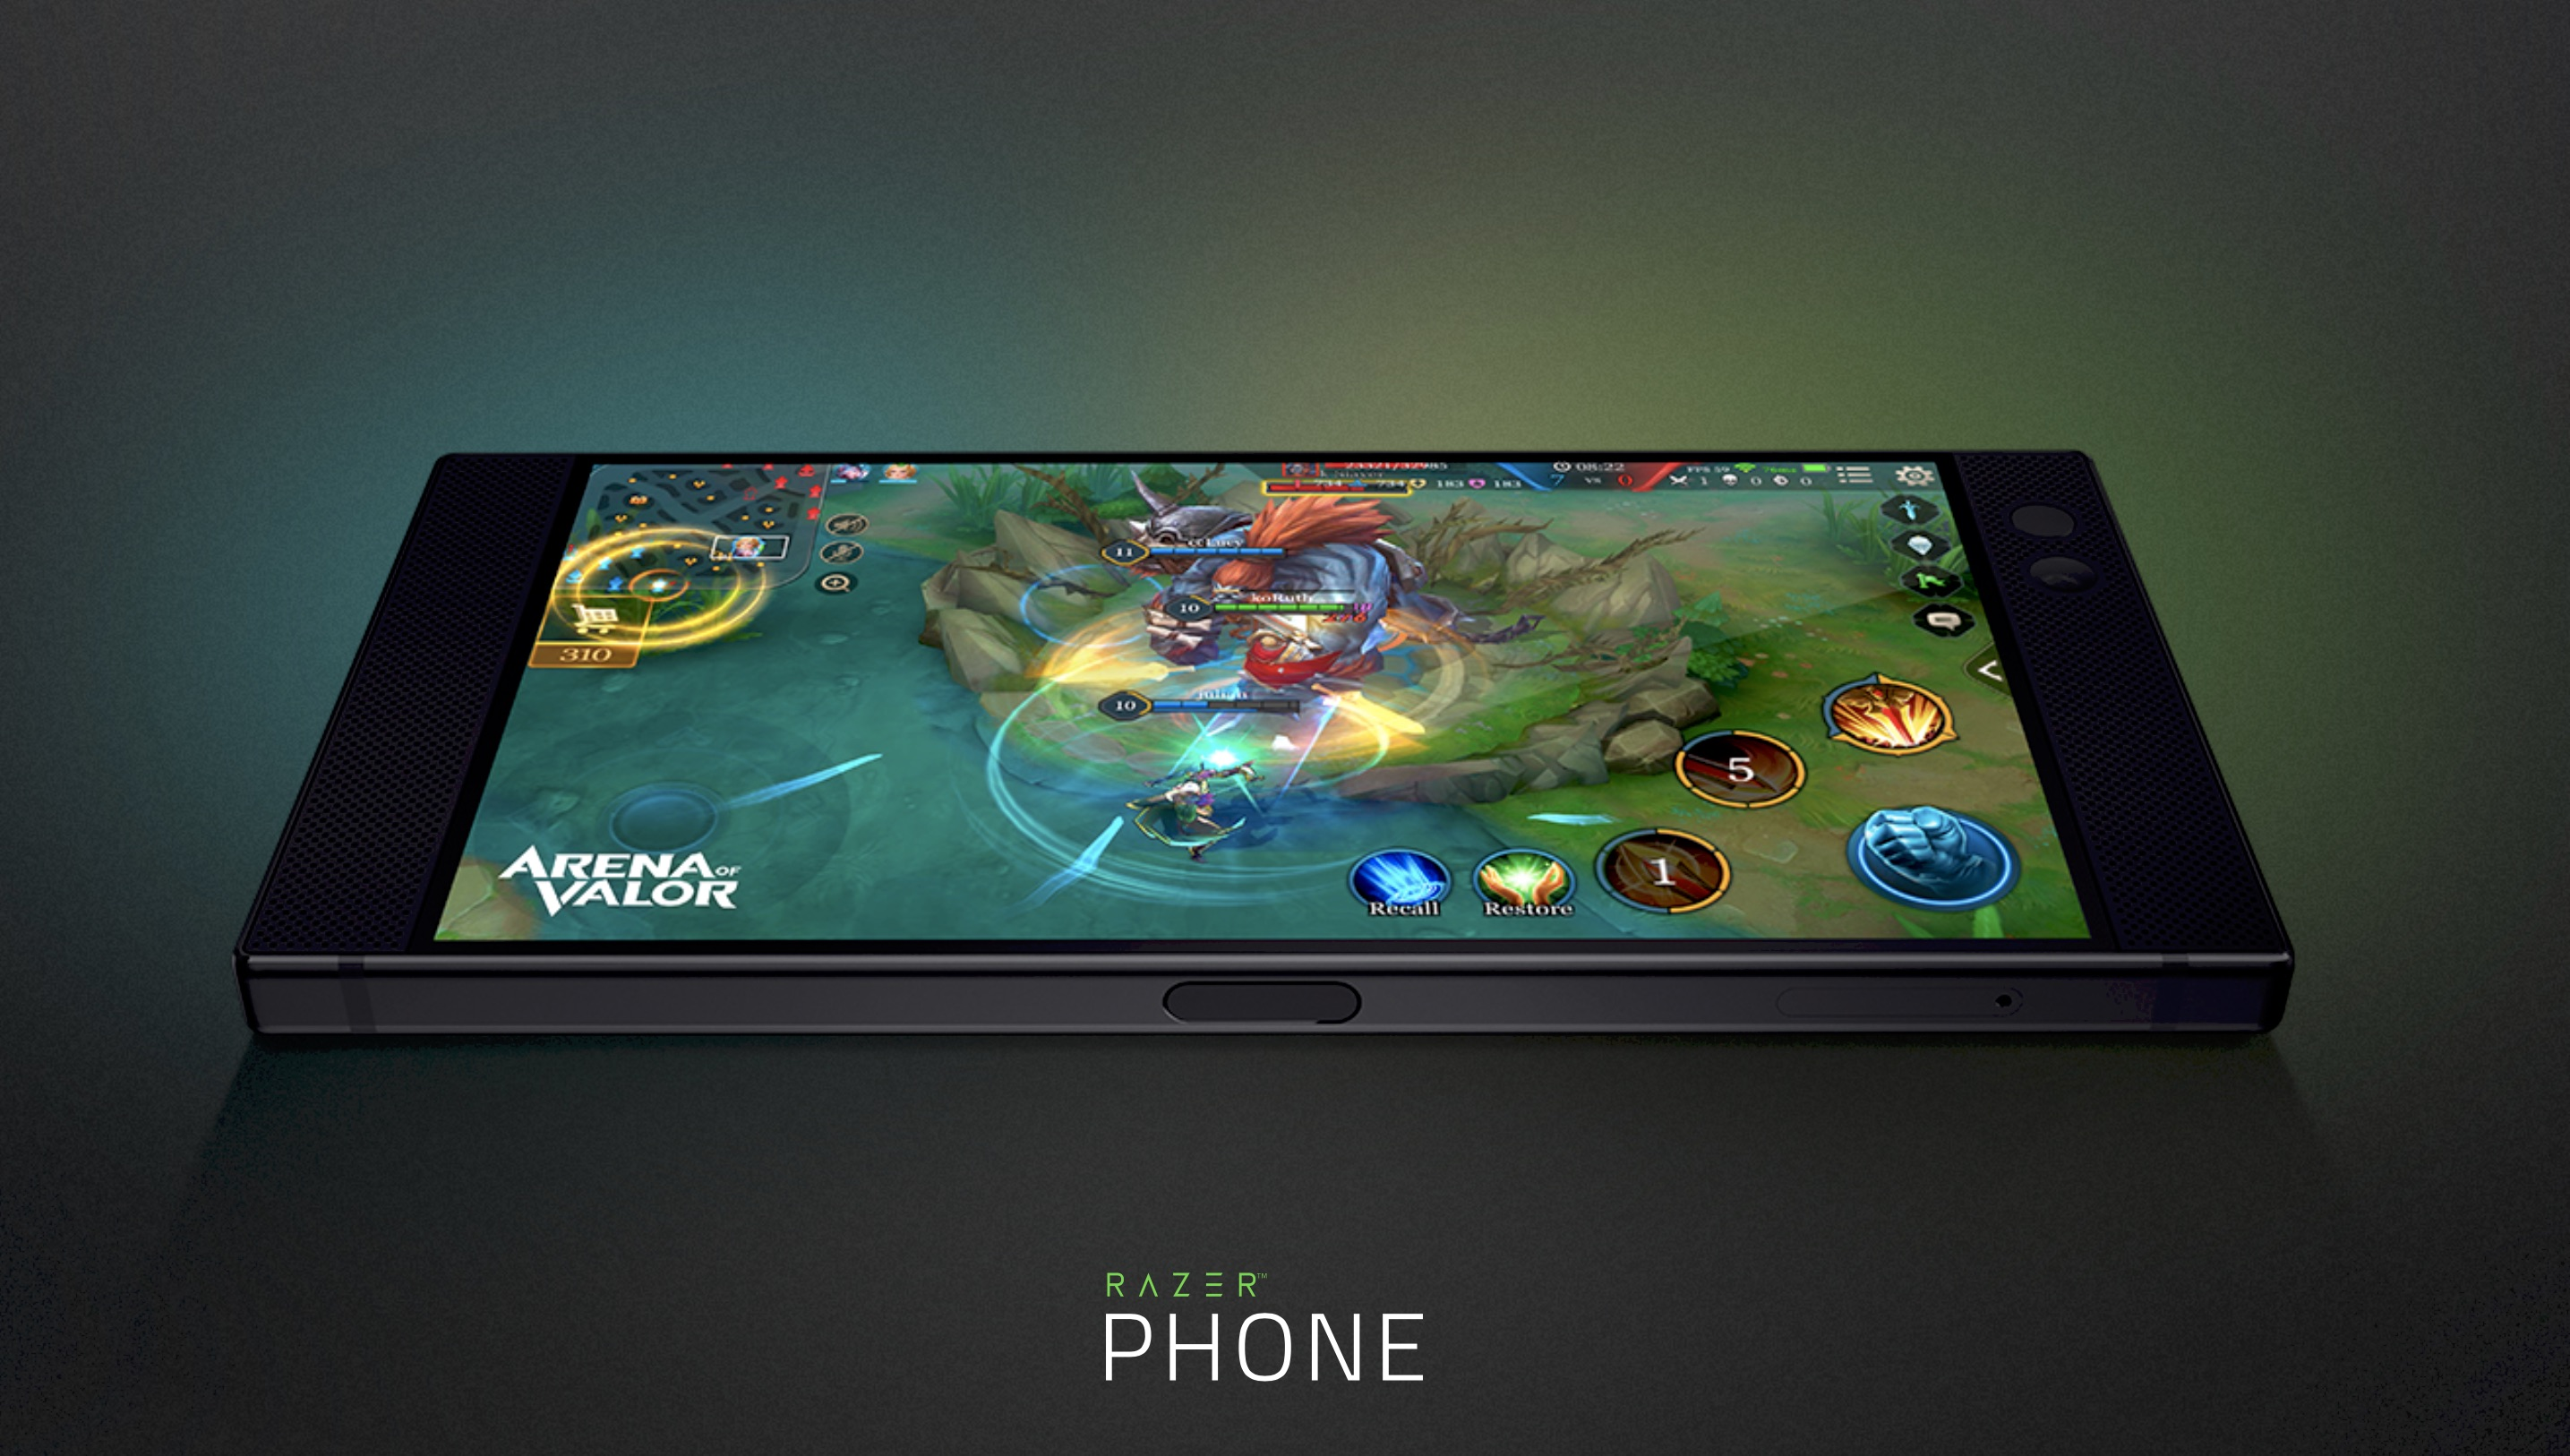 Razer Phone Is a Powerful Android Gaming Device Featuring